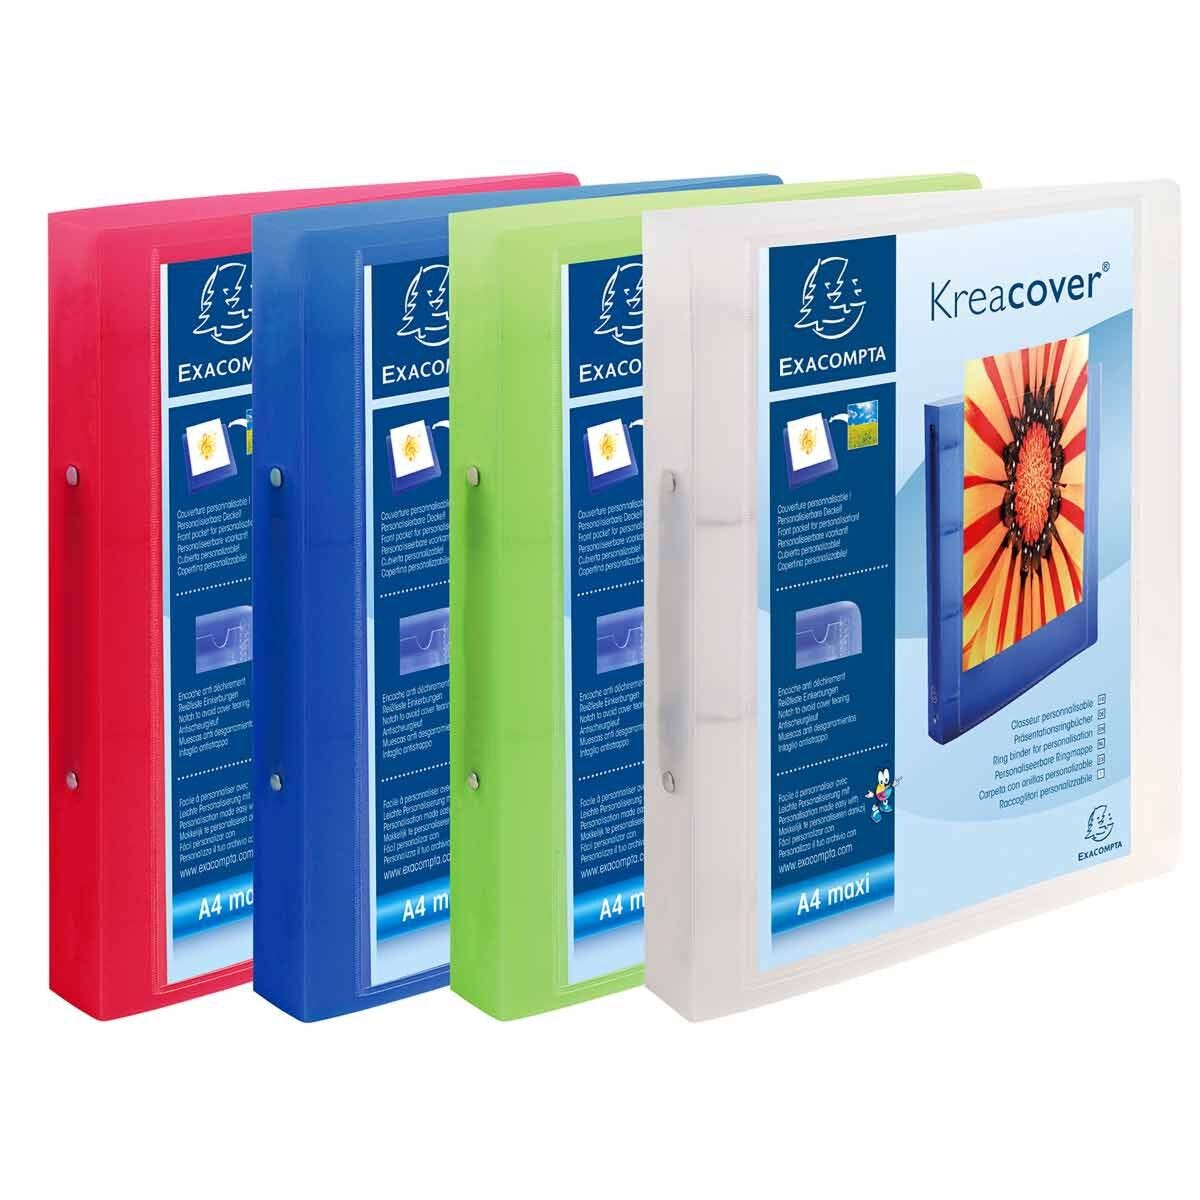 Exacompta Kreacover Chromaline Ring Binder A4 Plus 2 Ring Pack of 12 Assorted